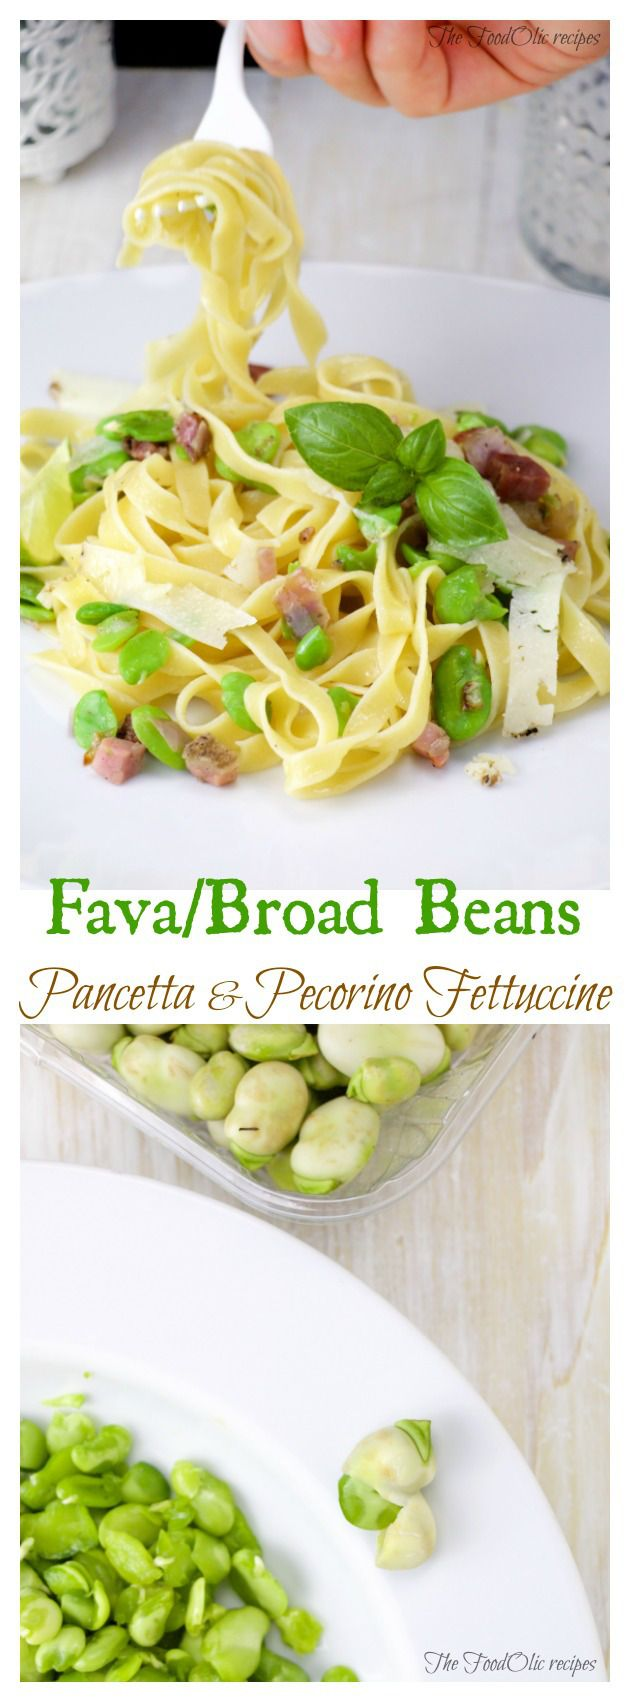 Fresh Broad Beans, cured pancetta and truffled pecorino fettuccine is the perfect spring dish. A mix of fresh ingredients for an delicate, fresh and elegant dish! #pasta #broadbeans #fava #italianfood #pancetta